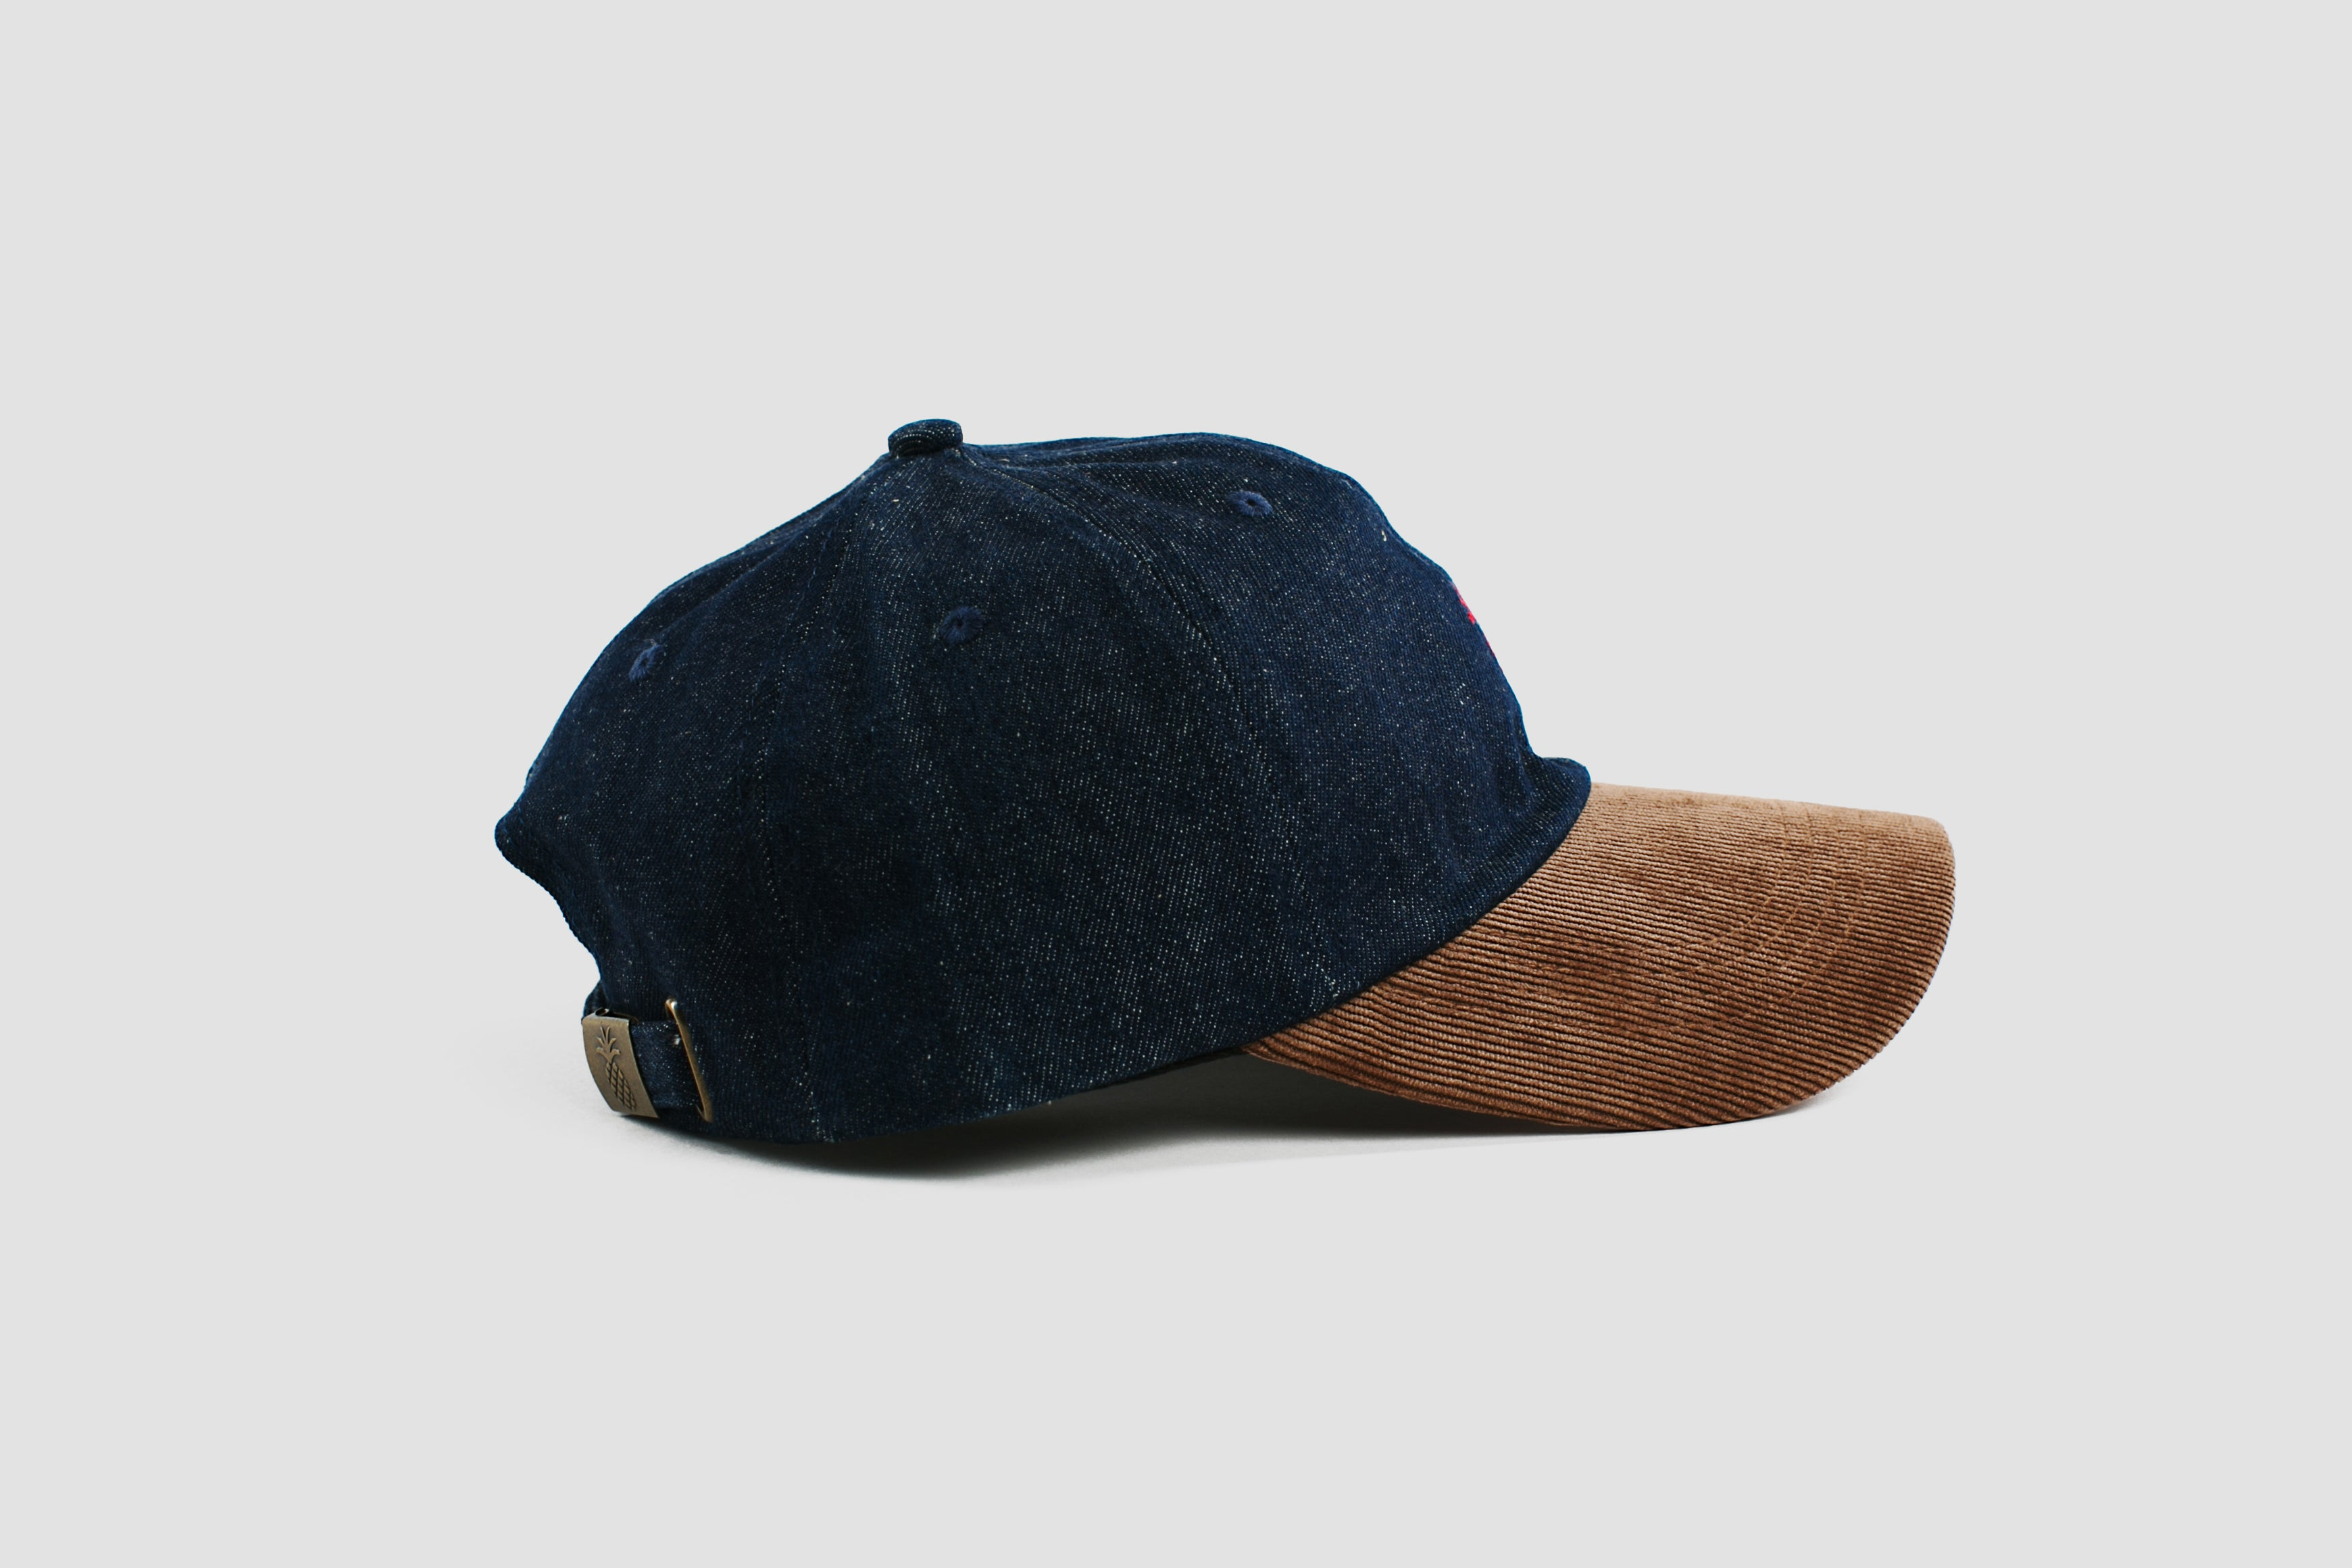 Qilo - Pineapple Two-Tone Dad Hat in Denim & Corduroy